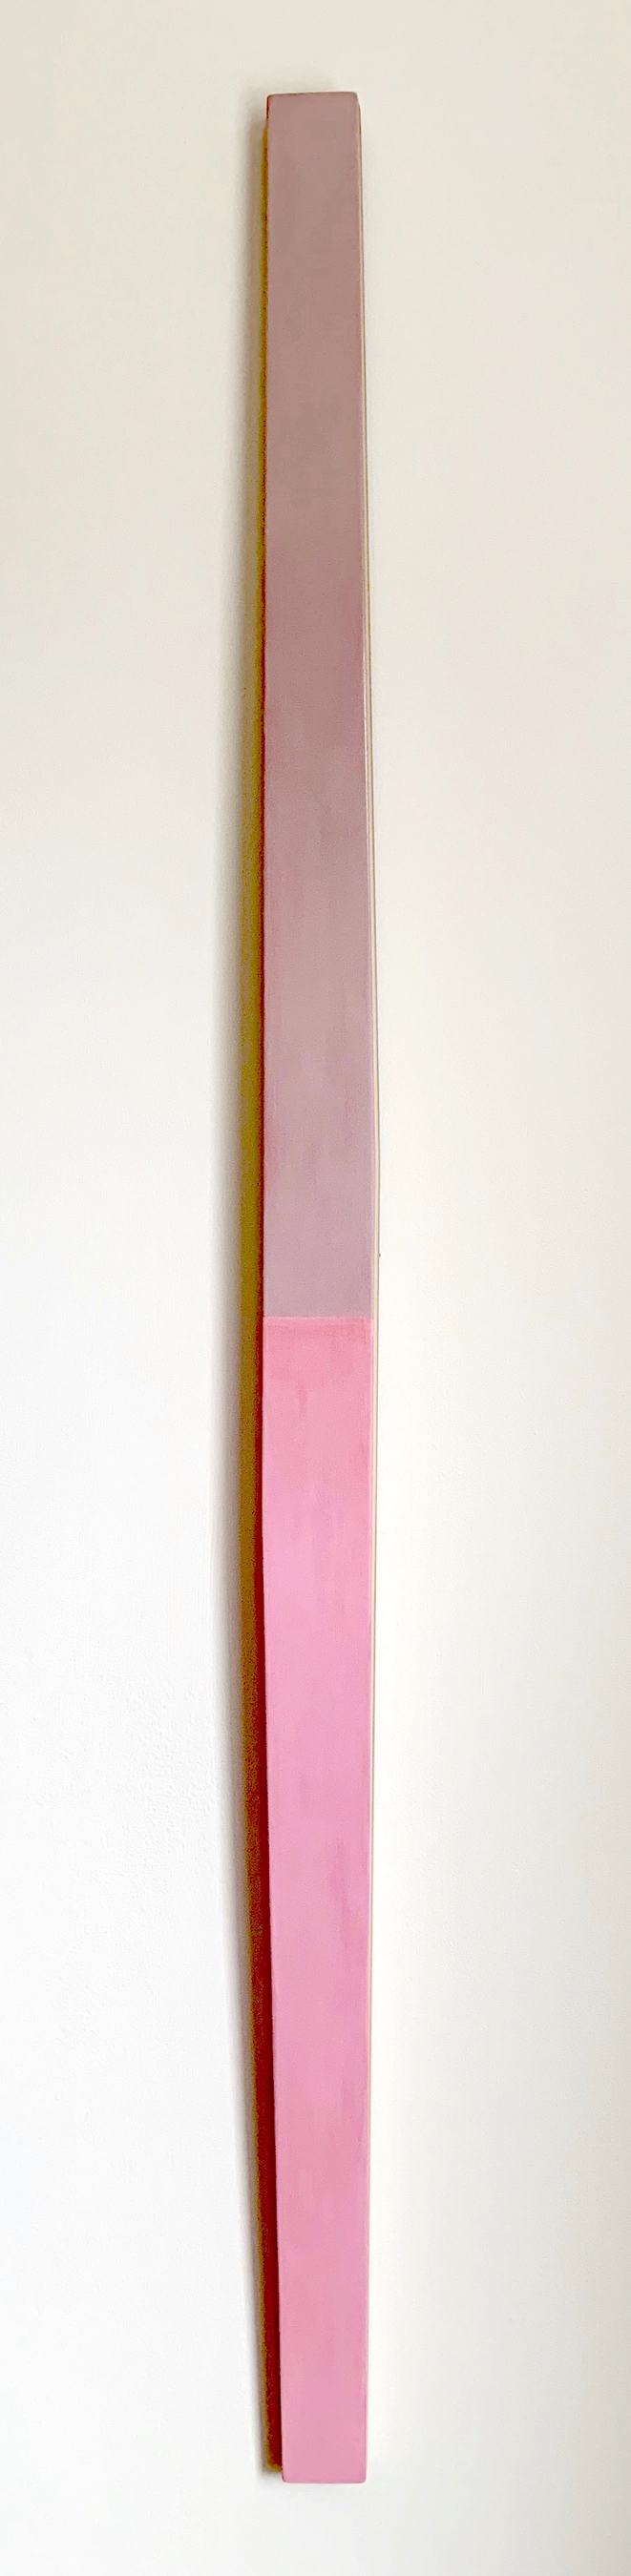 Illusion of Flight #1, 62.25 x 2.875 x 1.75 inches / 158 x 7.3 x 4.5 cm, acrylic on poplar, 2019